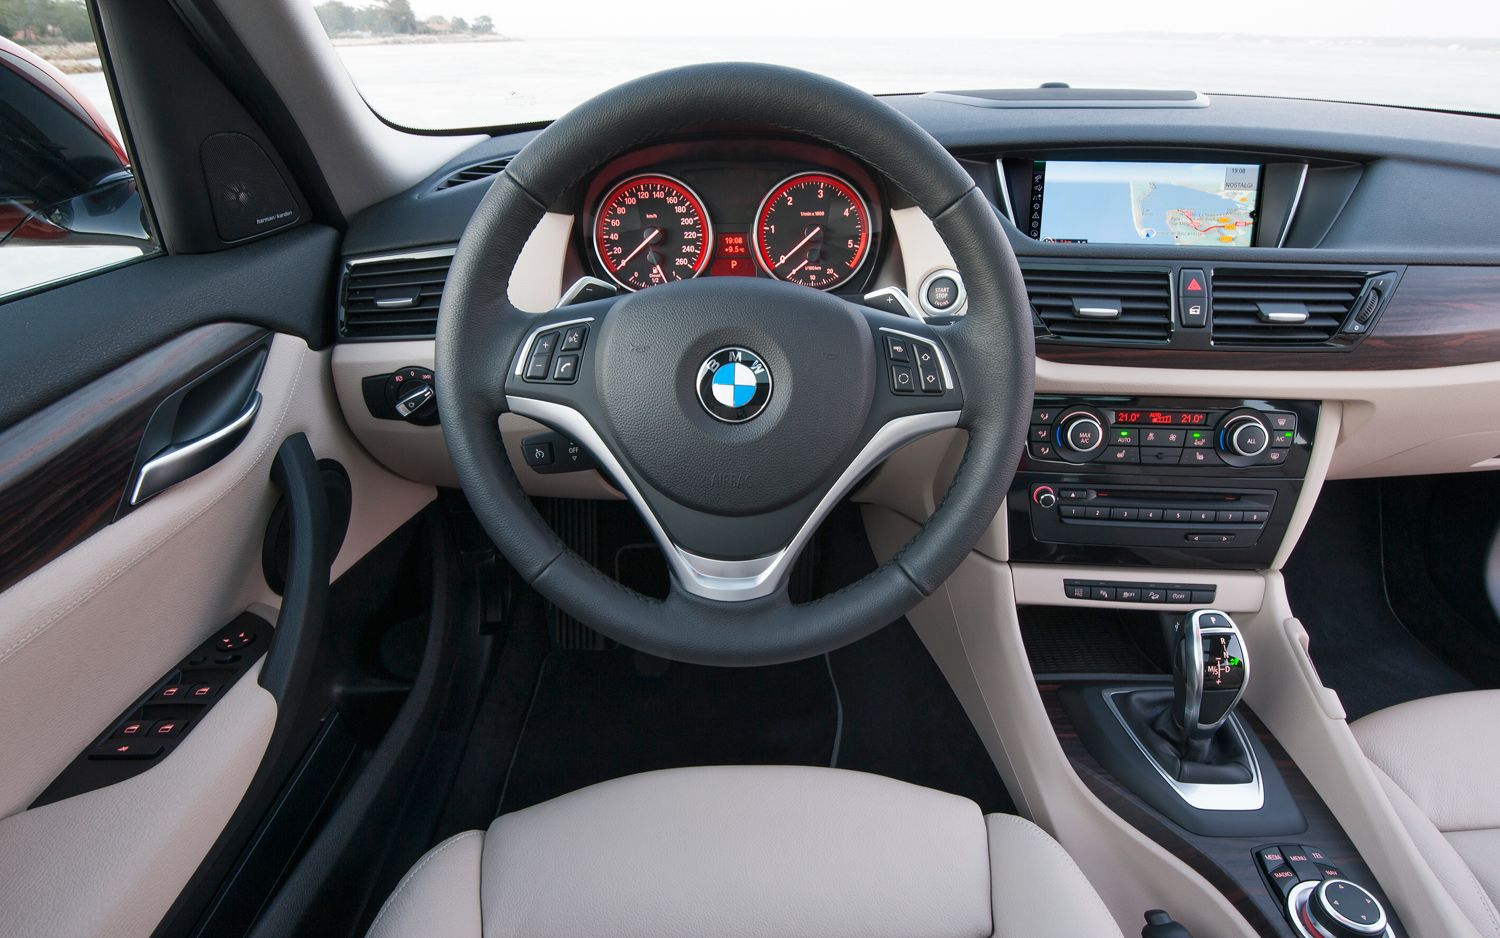 2017 Bmw X1 M Interior Design Changes Review High Resolution